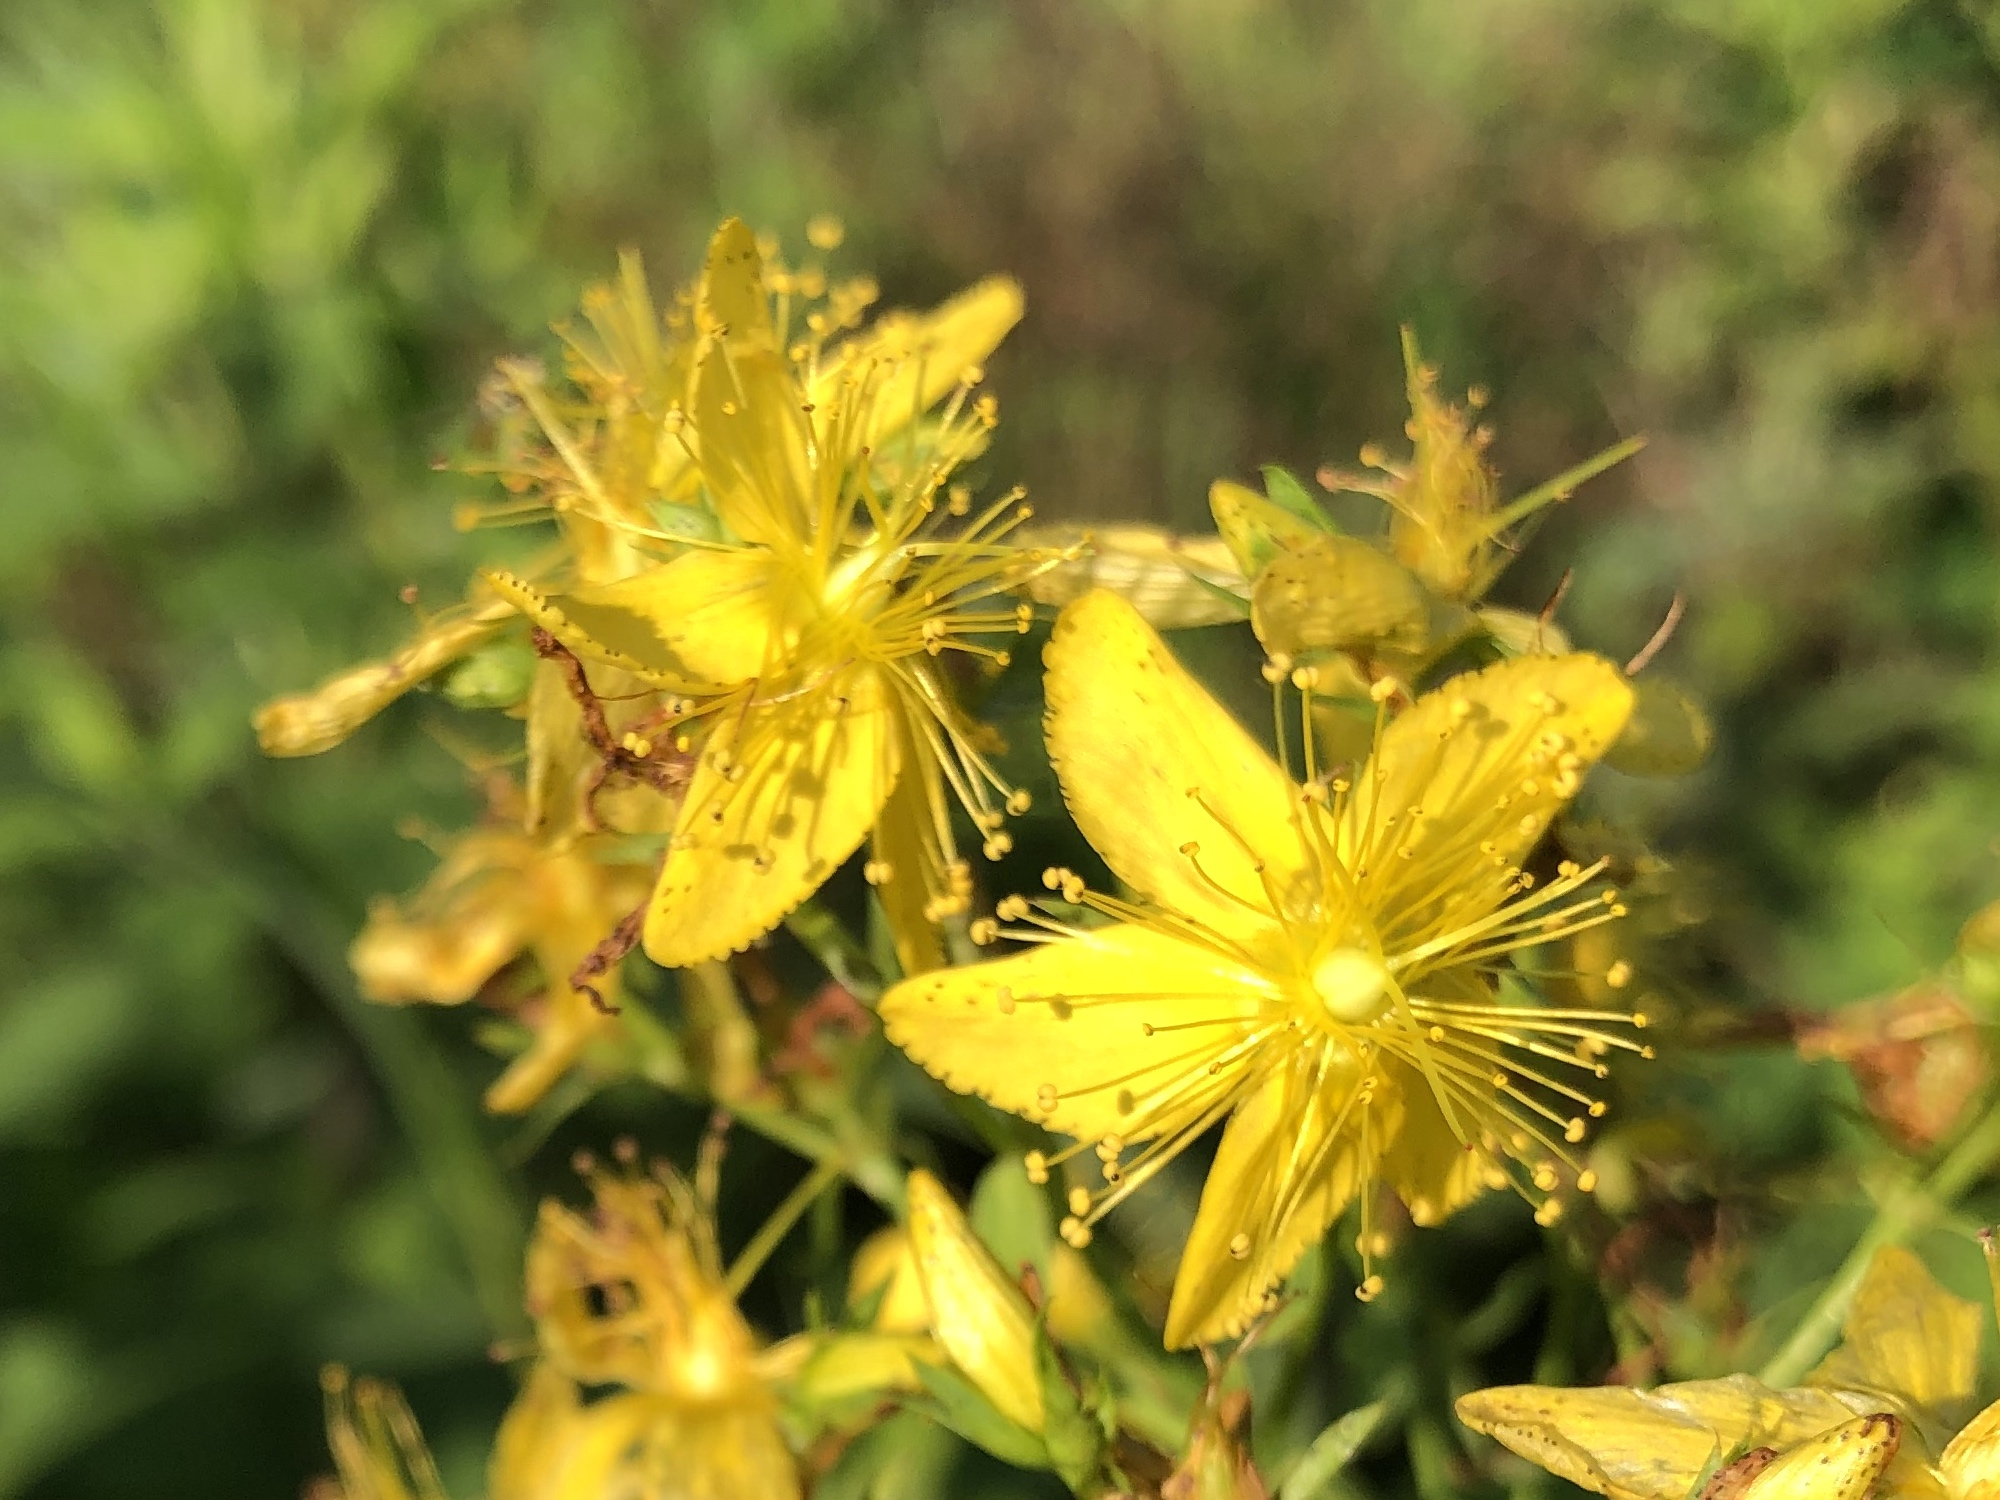 St. John's Wort on bank of Marion Dunn Pond on July 7, 219.